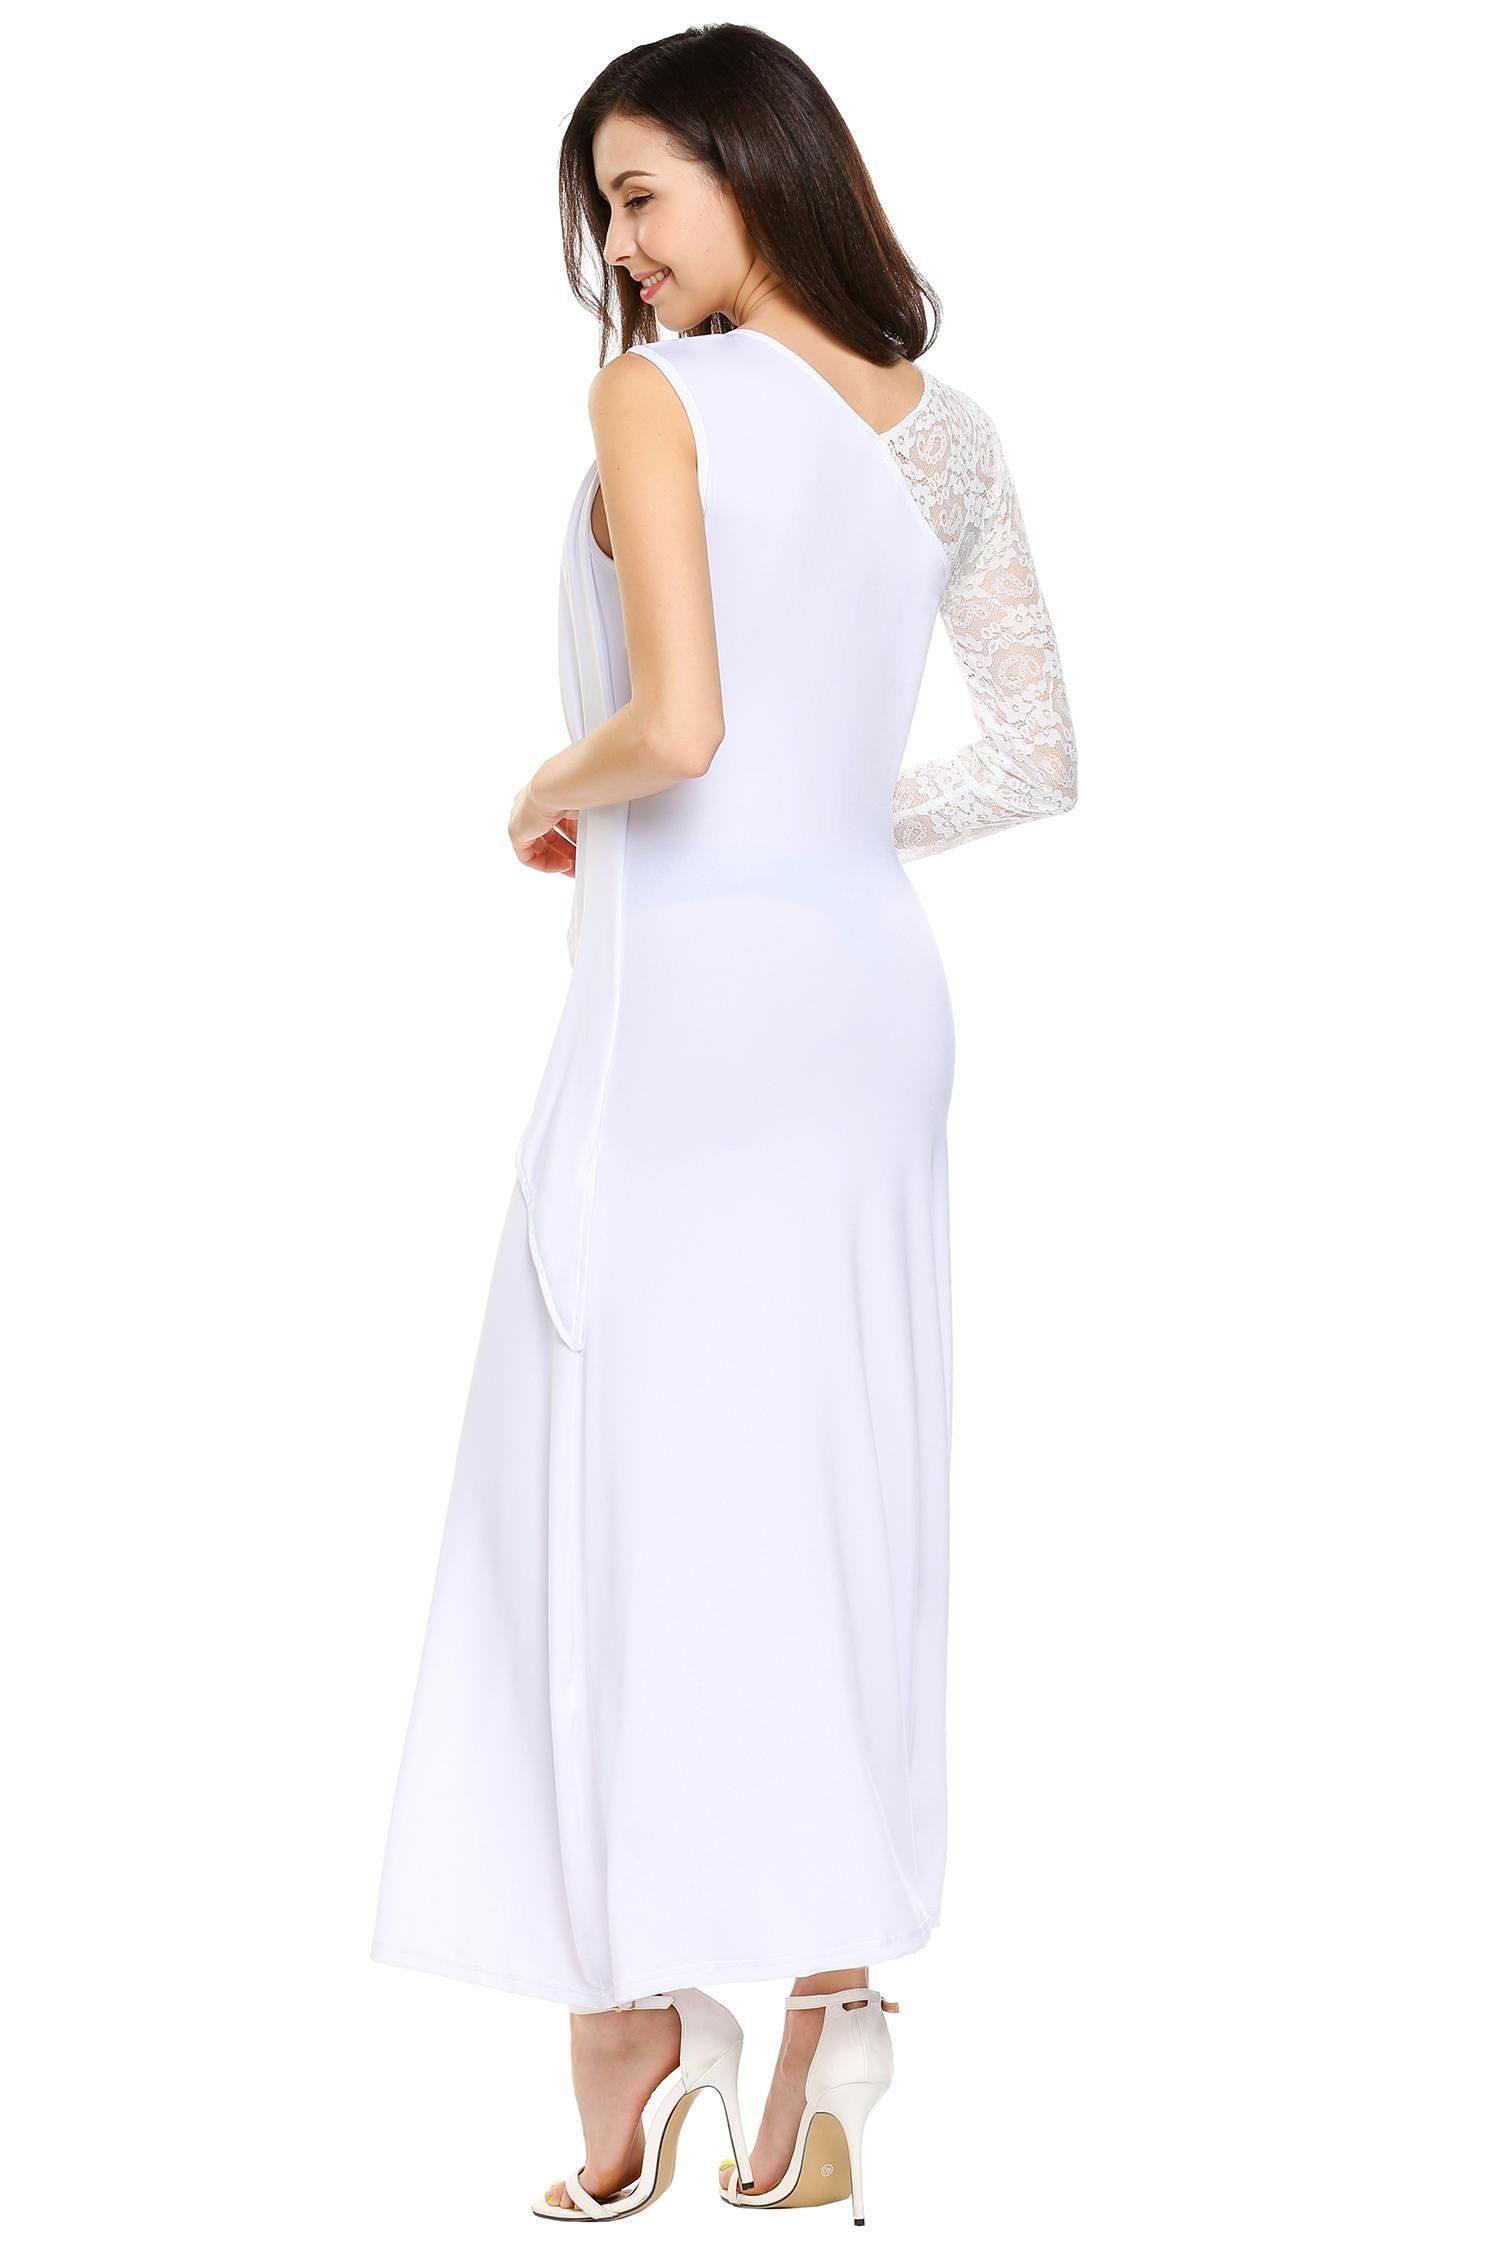 0fd6cdda41a00 Women Maternity Clothes - ANGVNS Women Sexy One Shoulder Long Sleeve  Bodycon Stretch Fit and Flared Midi Party Dress White L *** Take a look at  the picture ...